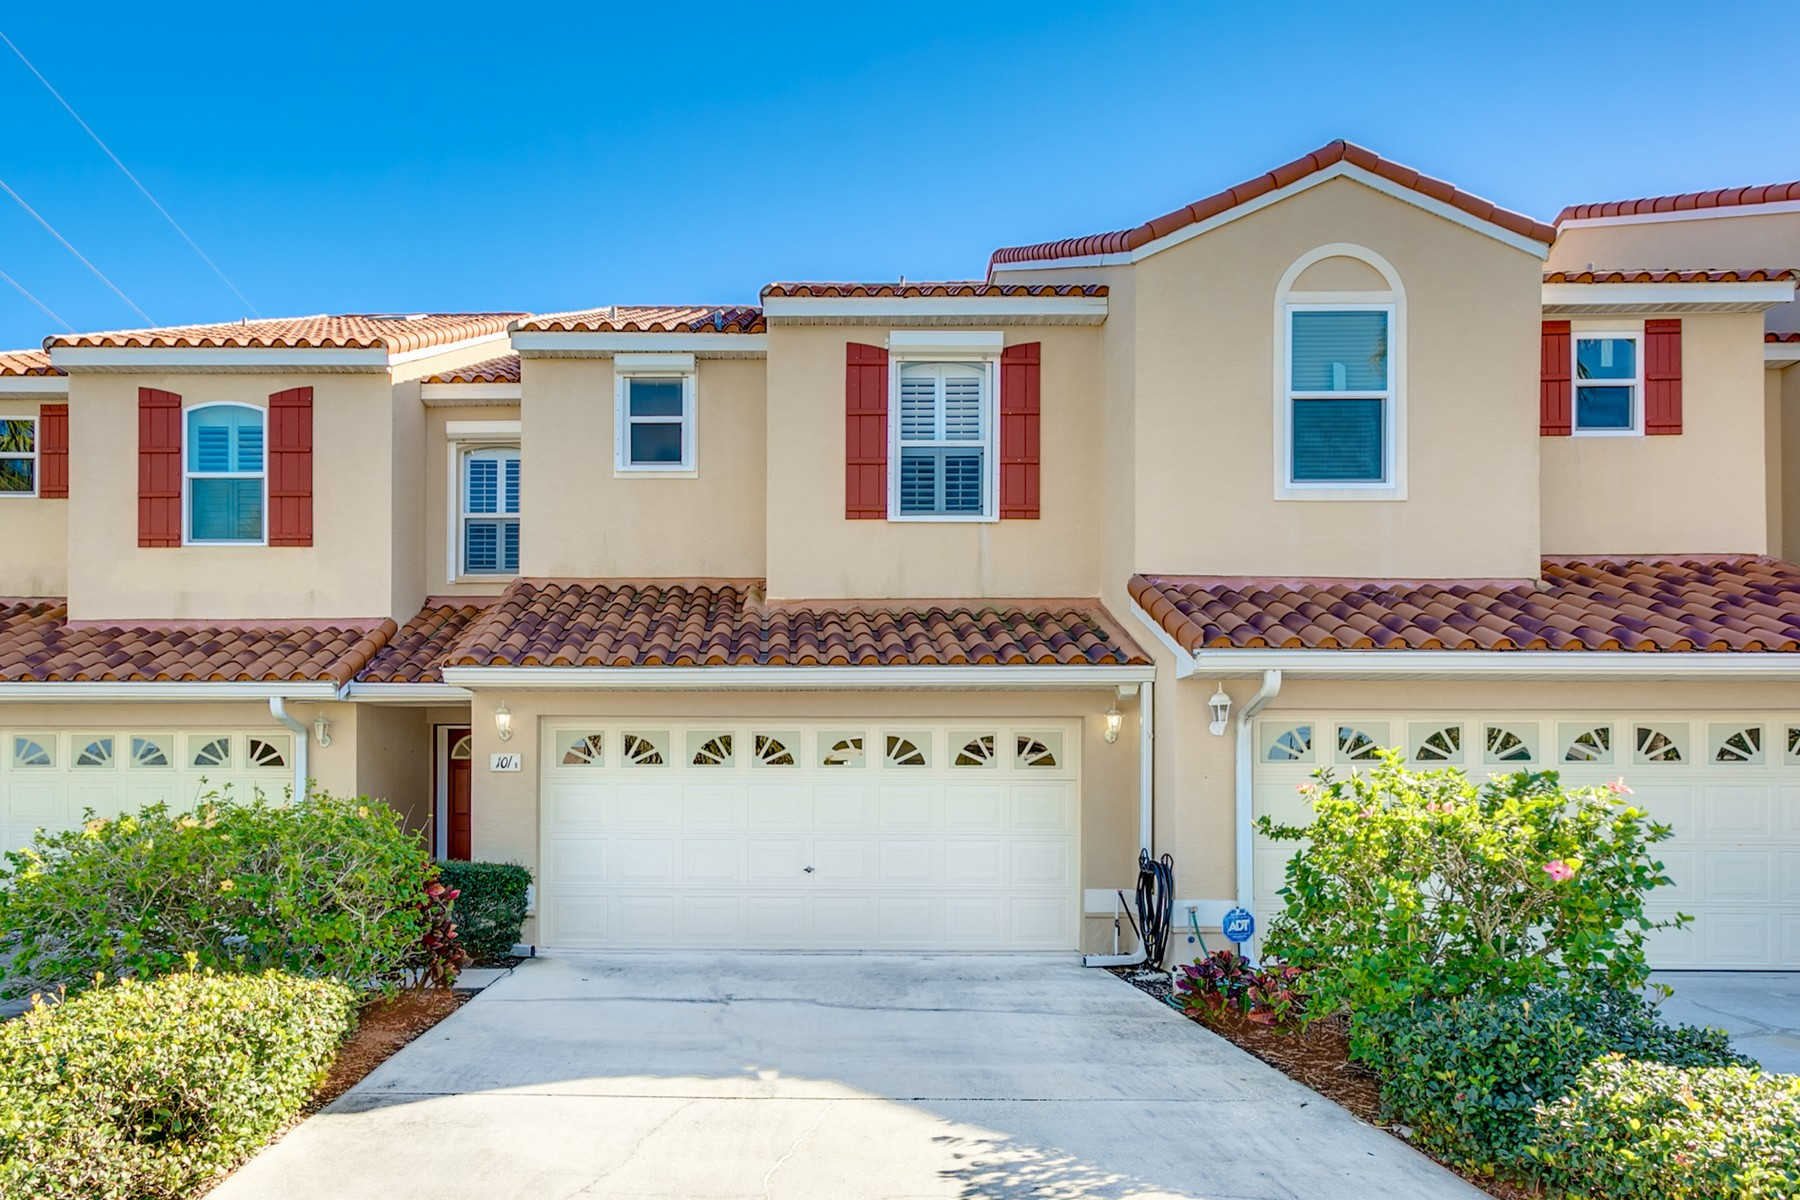 Townhouse for Sale at 101-B Melbourne Ave 101-B Melbourne Ave. Indialantic, Florida 32903 United States